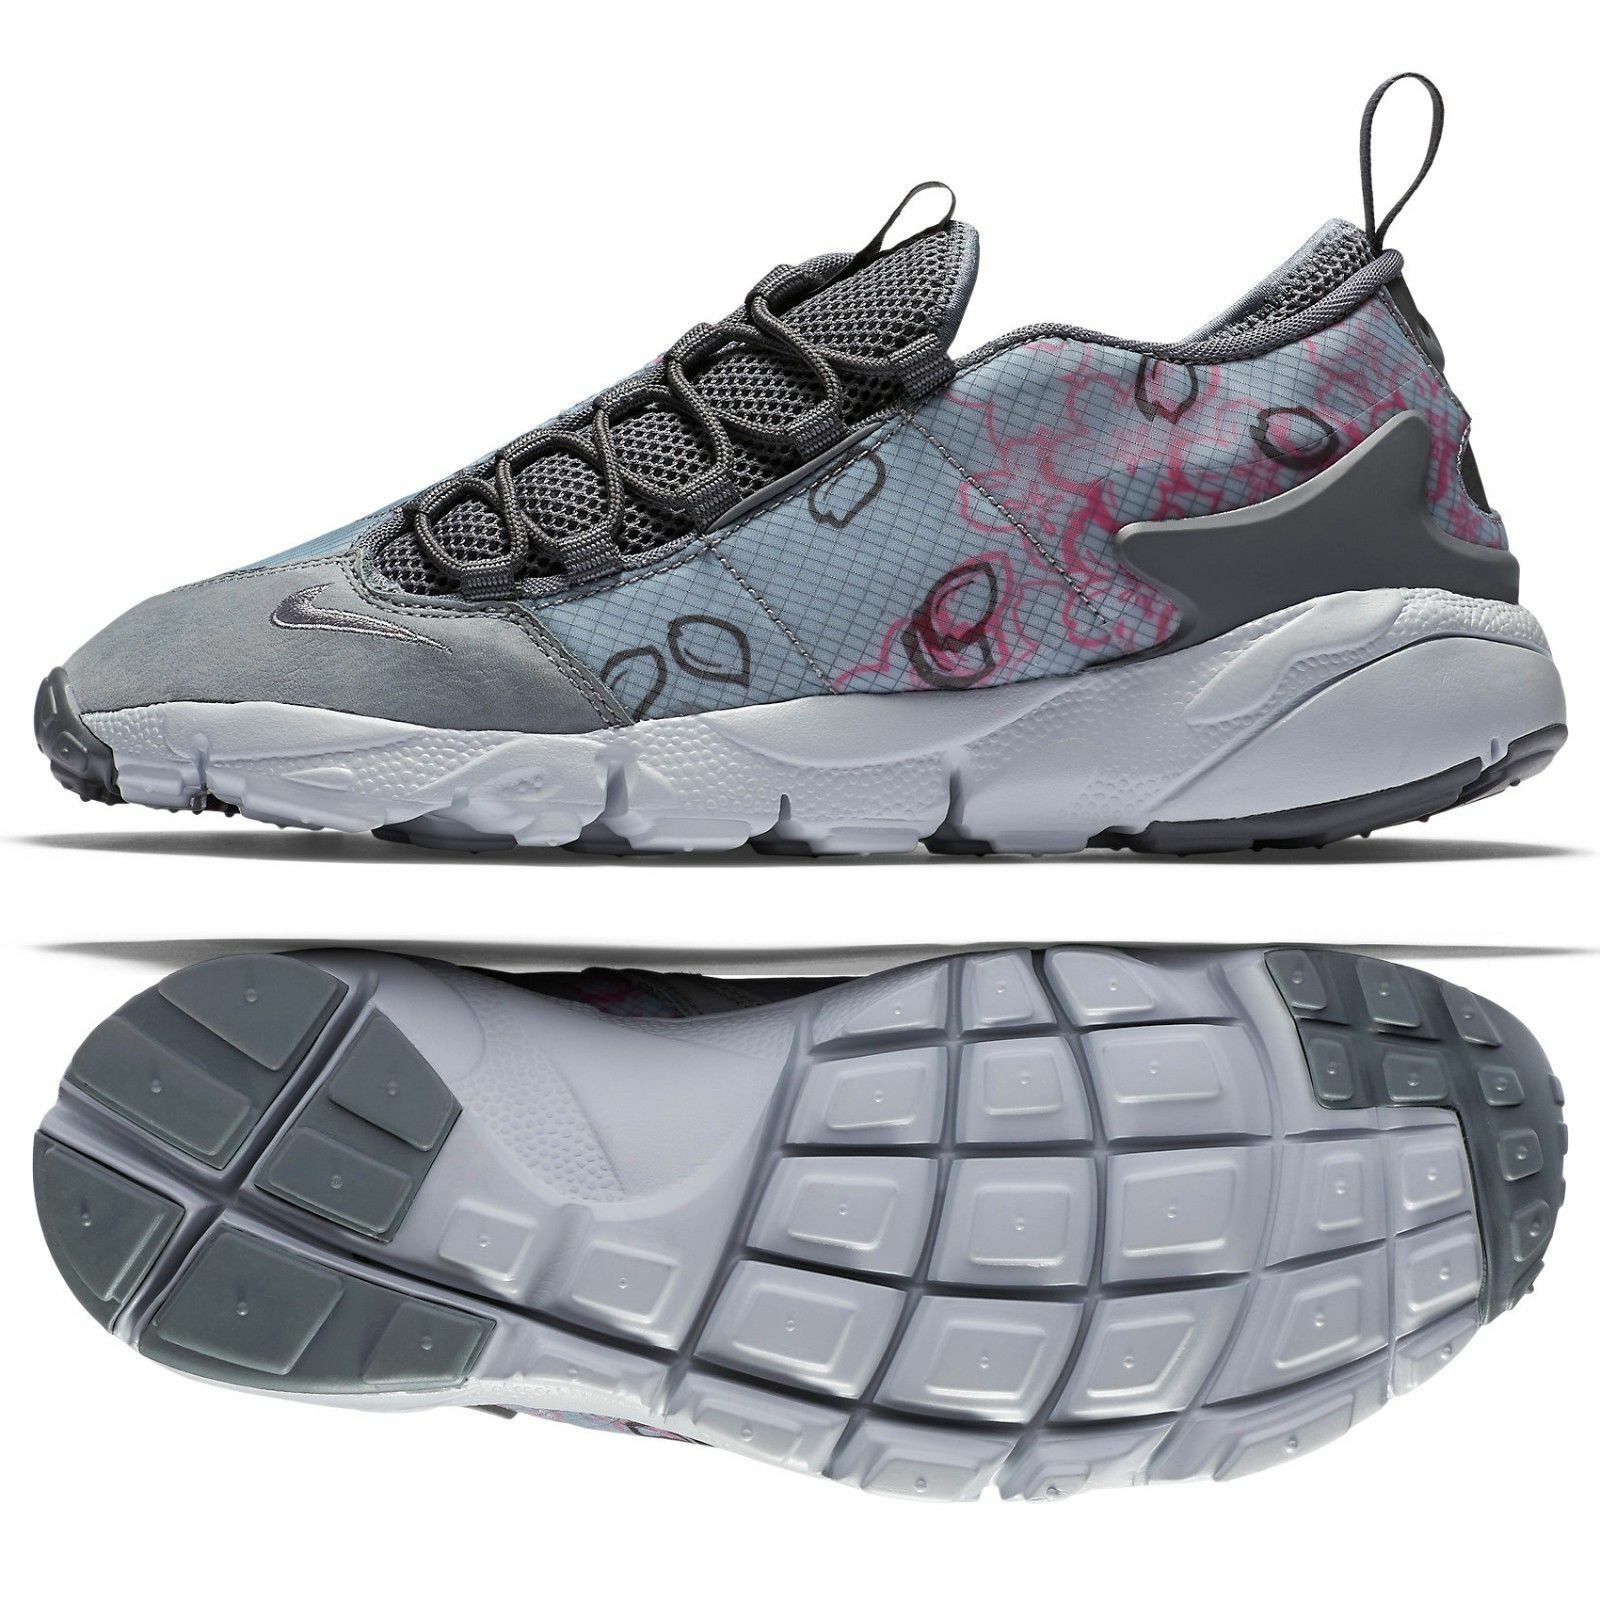 b0750c7adc FOOTSCAPE NM PREMIUM QS GREY PINK MEN'S SHOES SIZE 11.5 (846786-002 ...